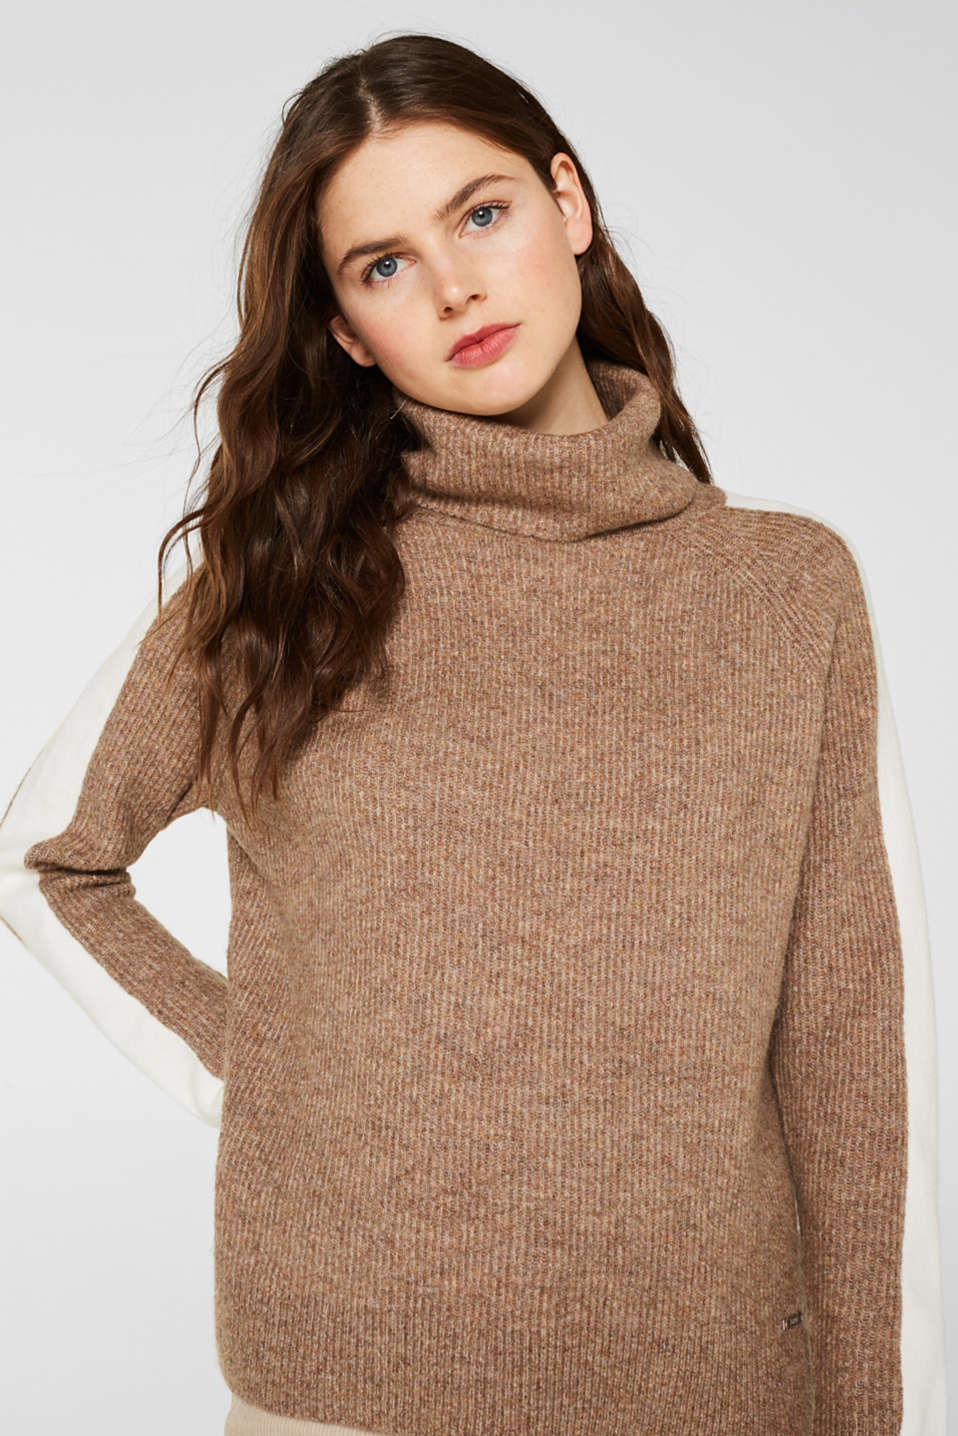 Polo neck jumper with racing stripes and wool, CAMEL 5, detail image number 0